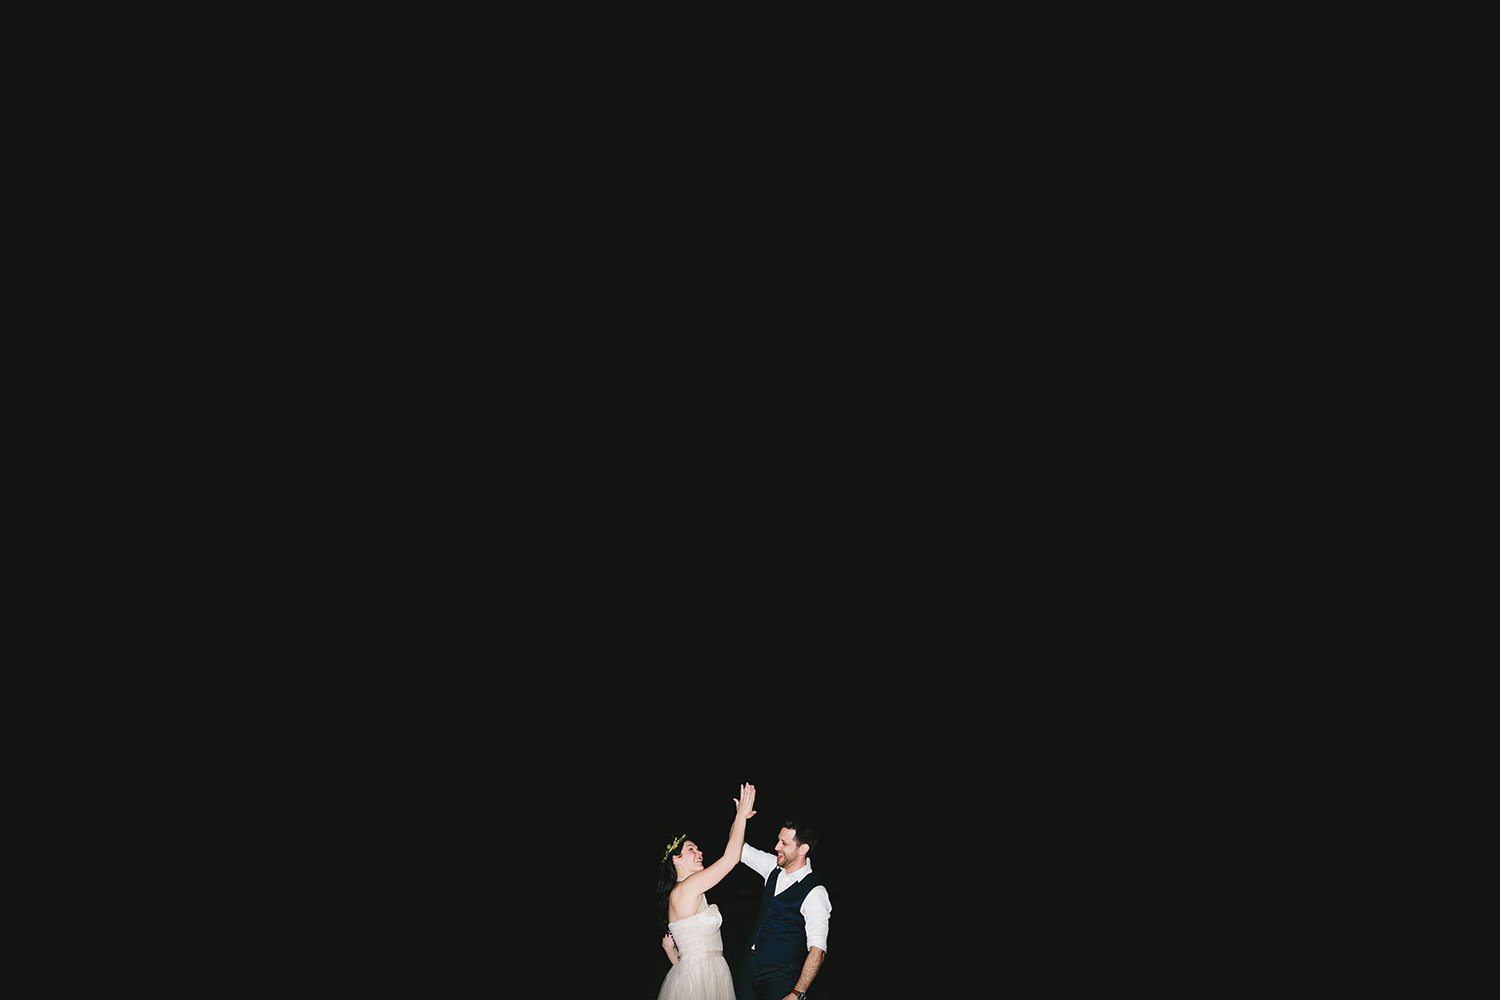 Melbourne_Winery_Wedding_Chris_Merrily187.JPG